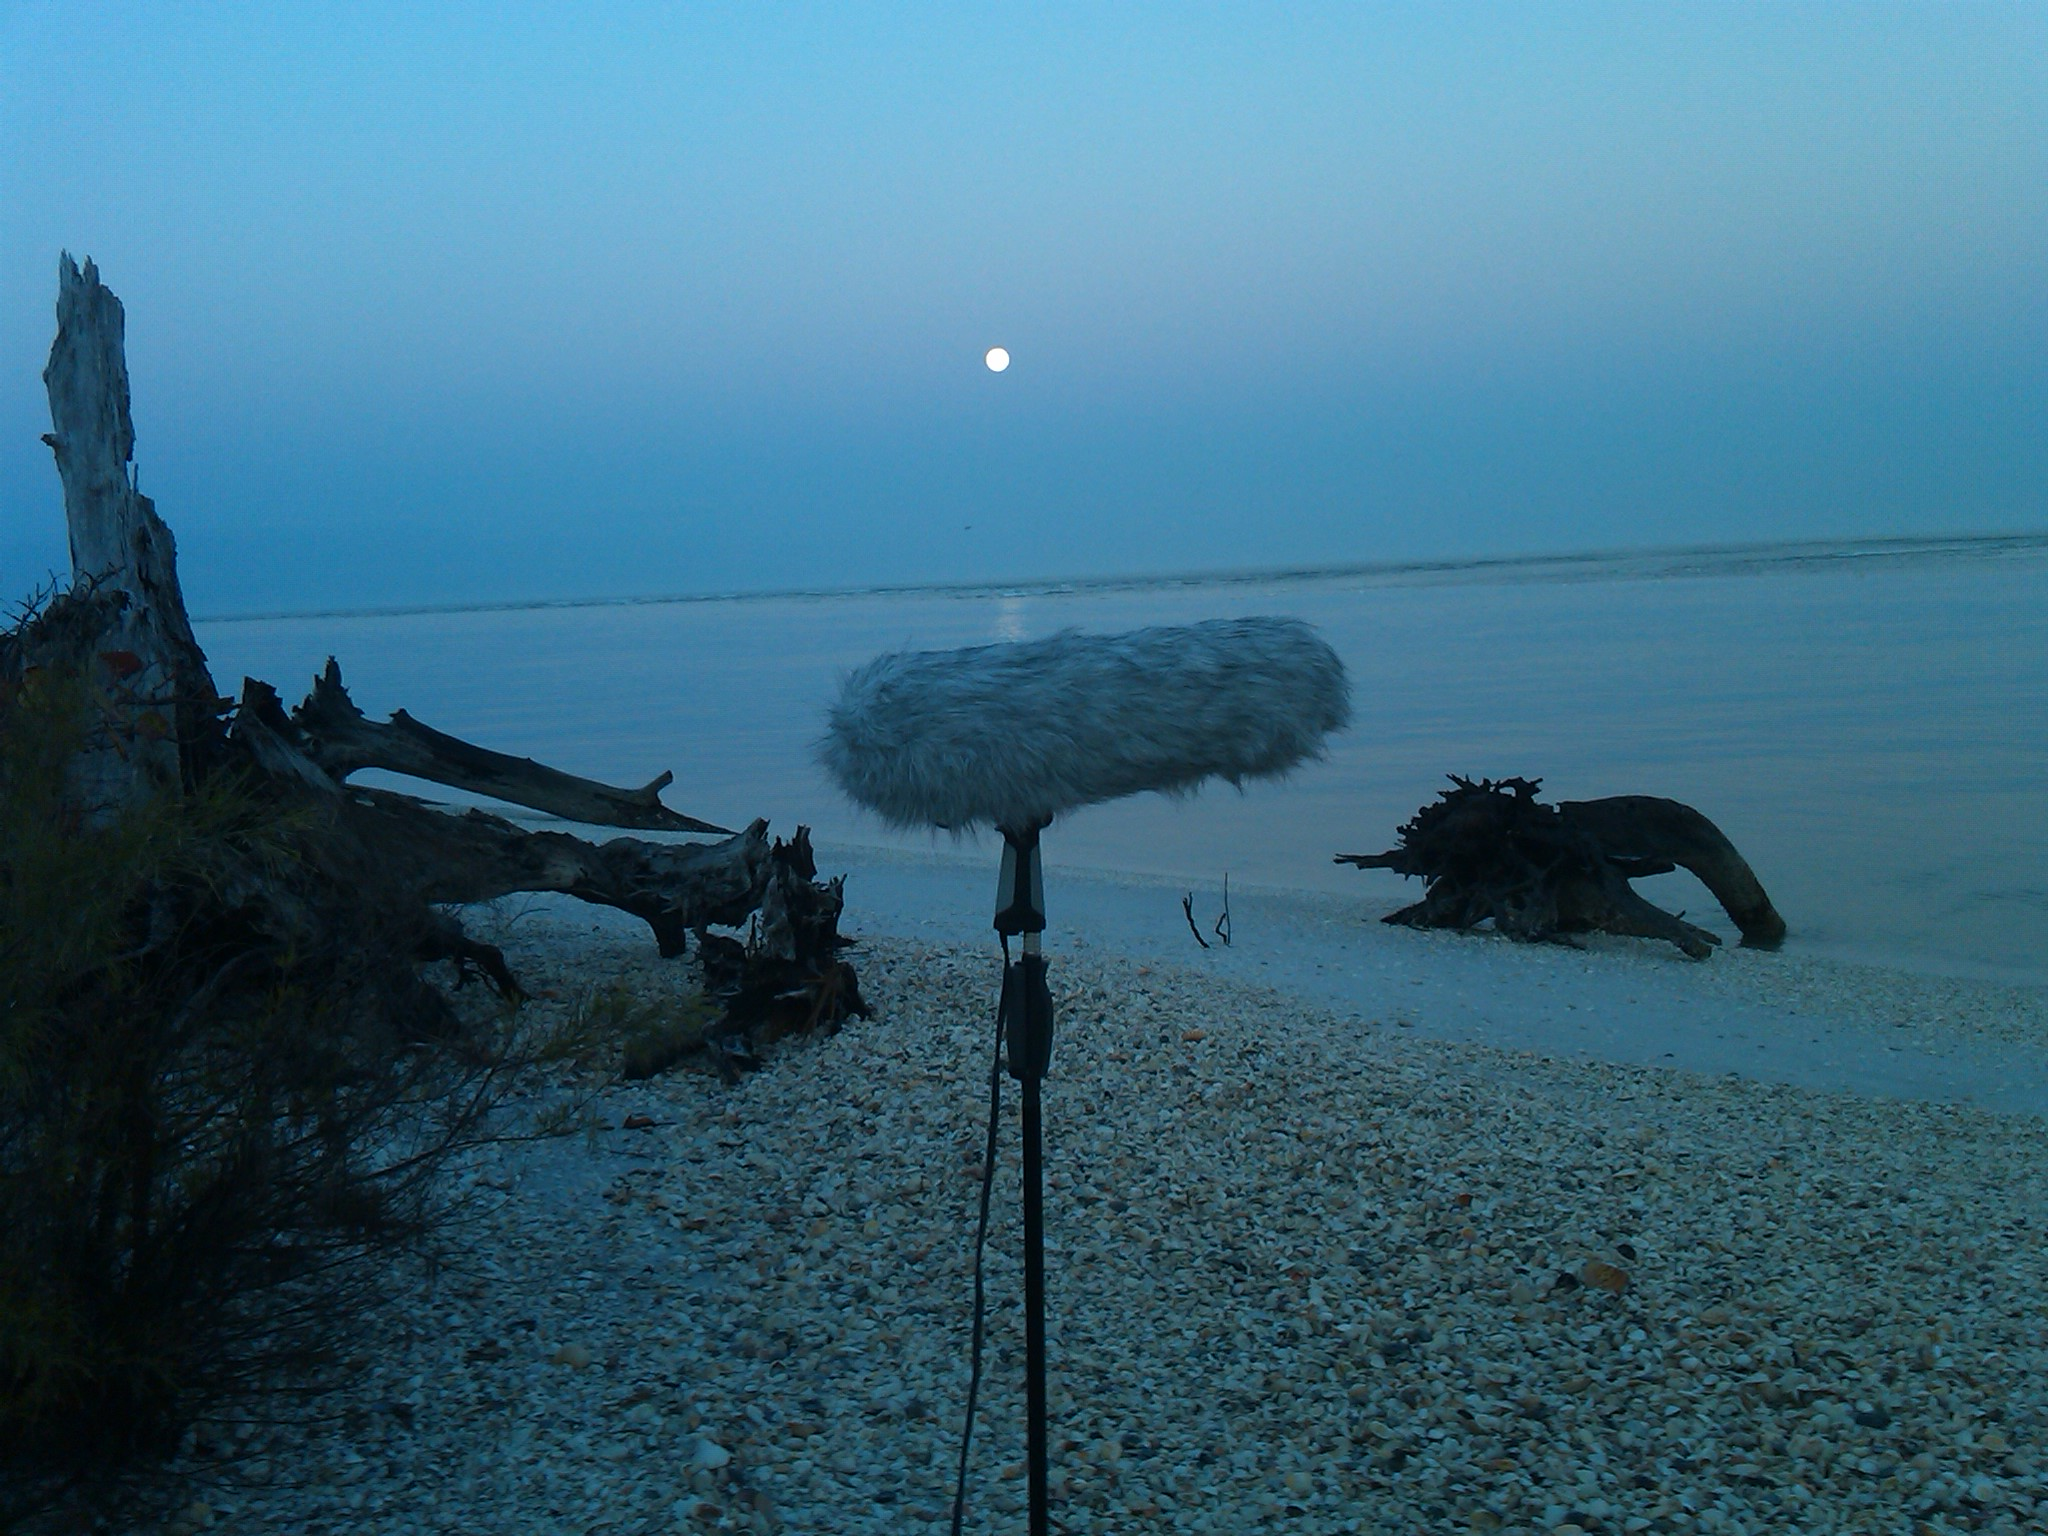 audio_ambience_recording_moon_background_0630am.jpg